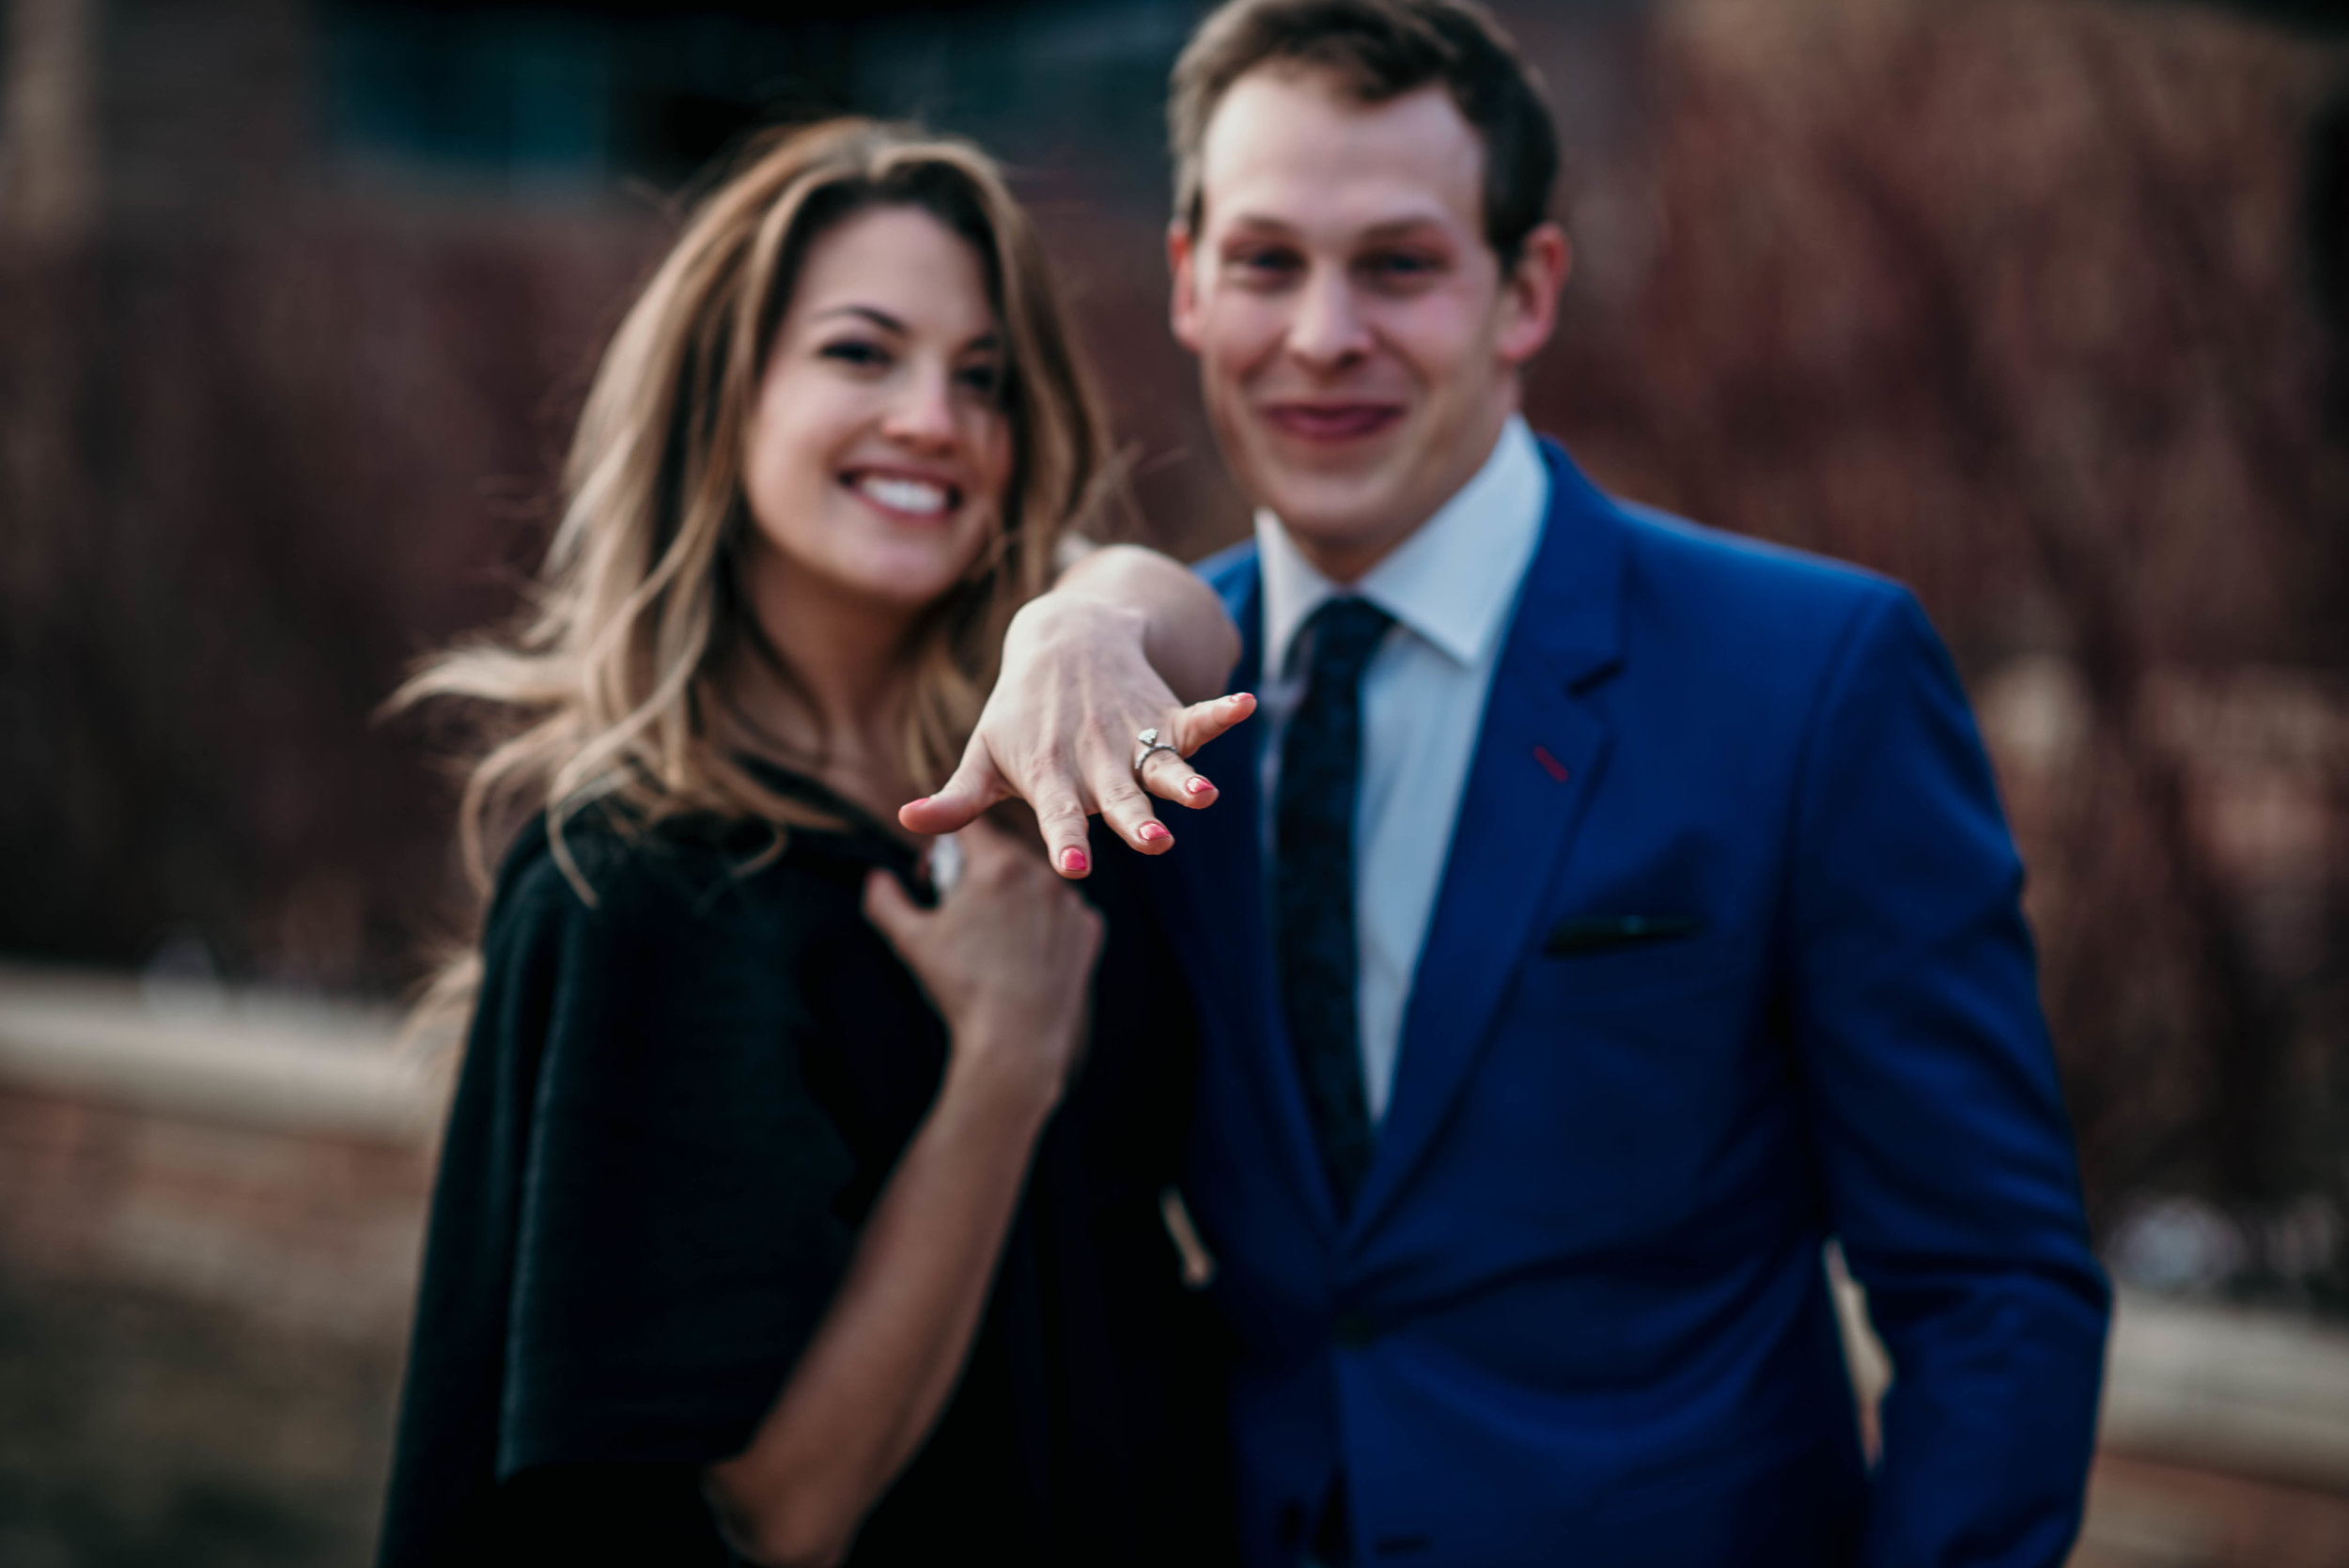 colorado_proposal_photographer_0359.jpg